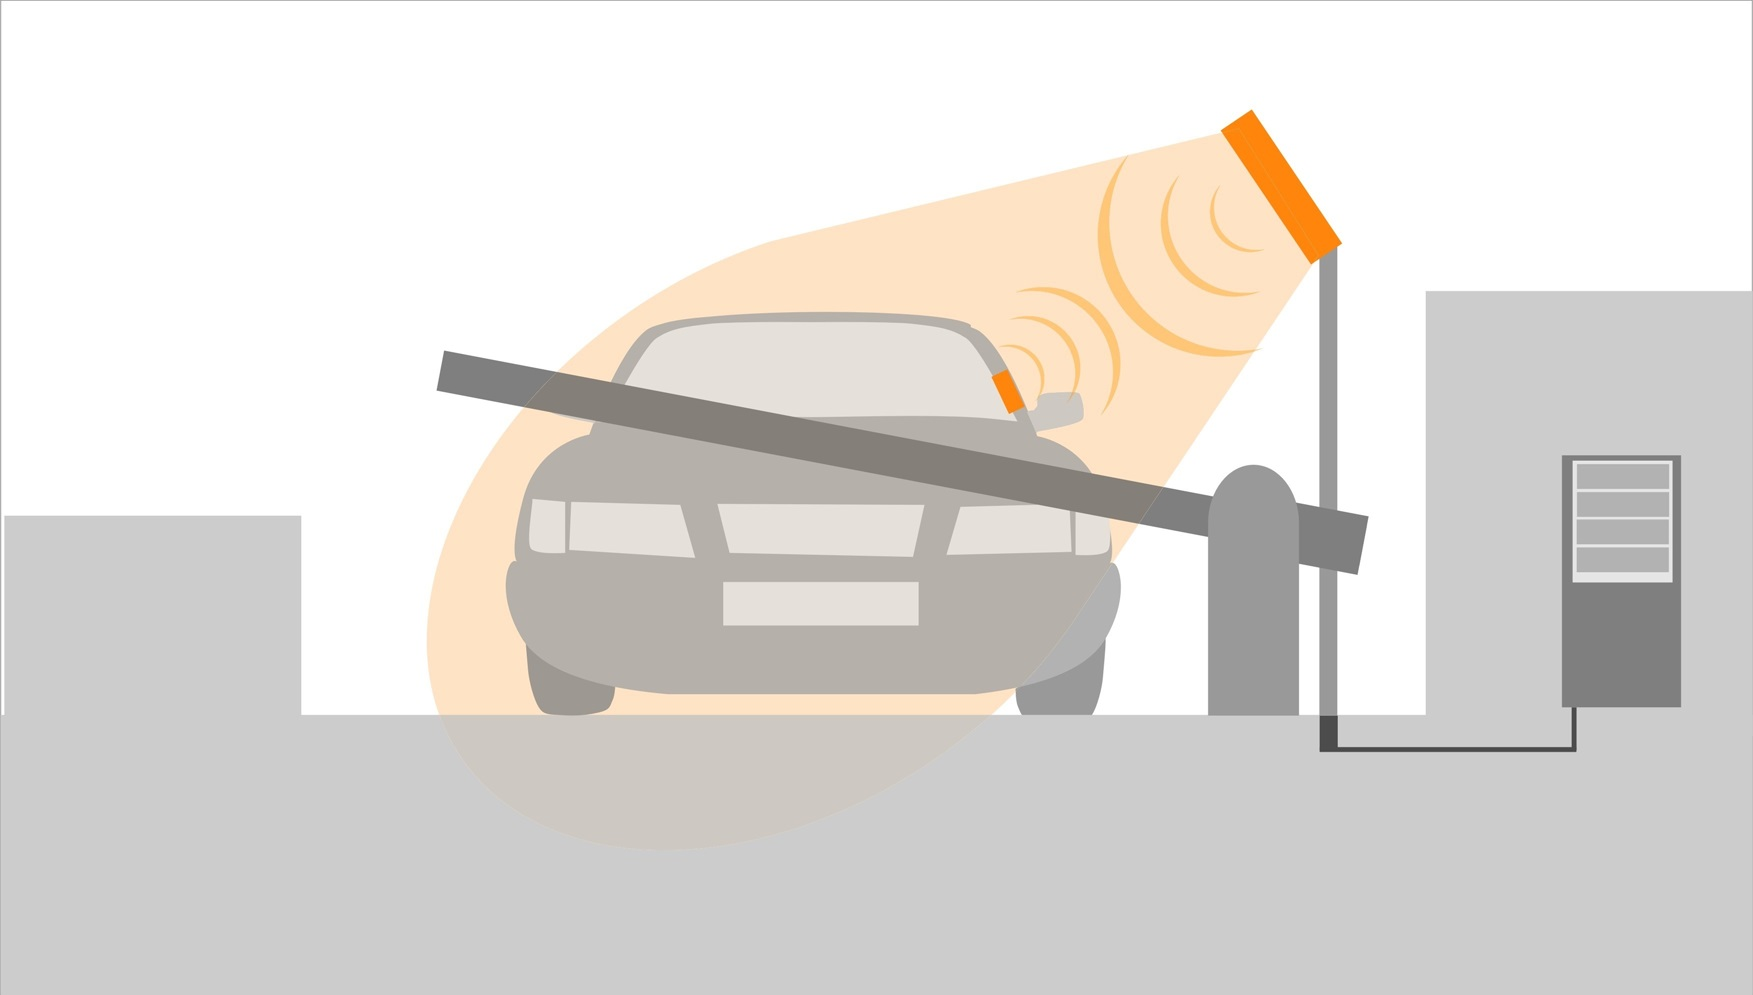 Illustration if RFID using for car identification